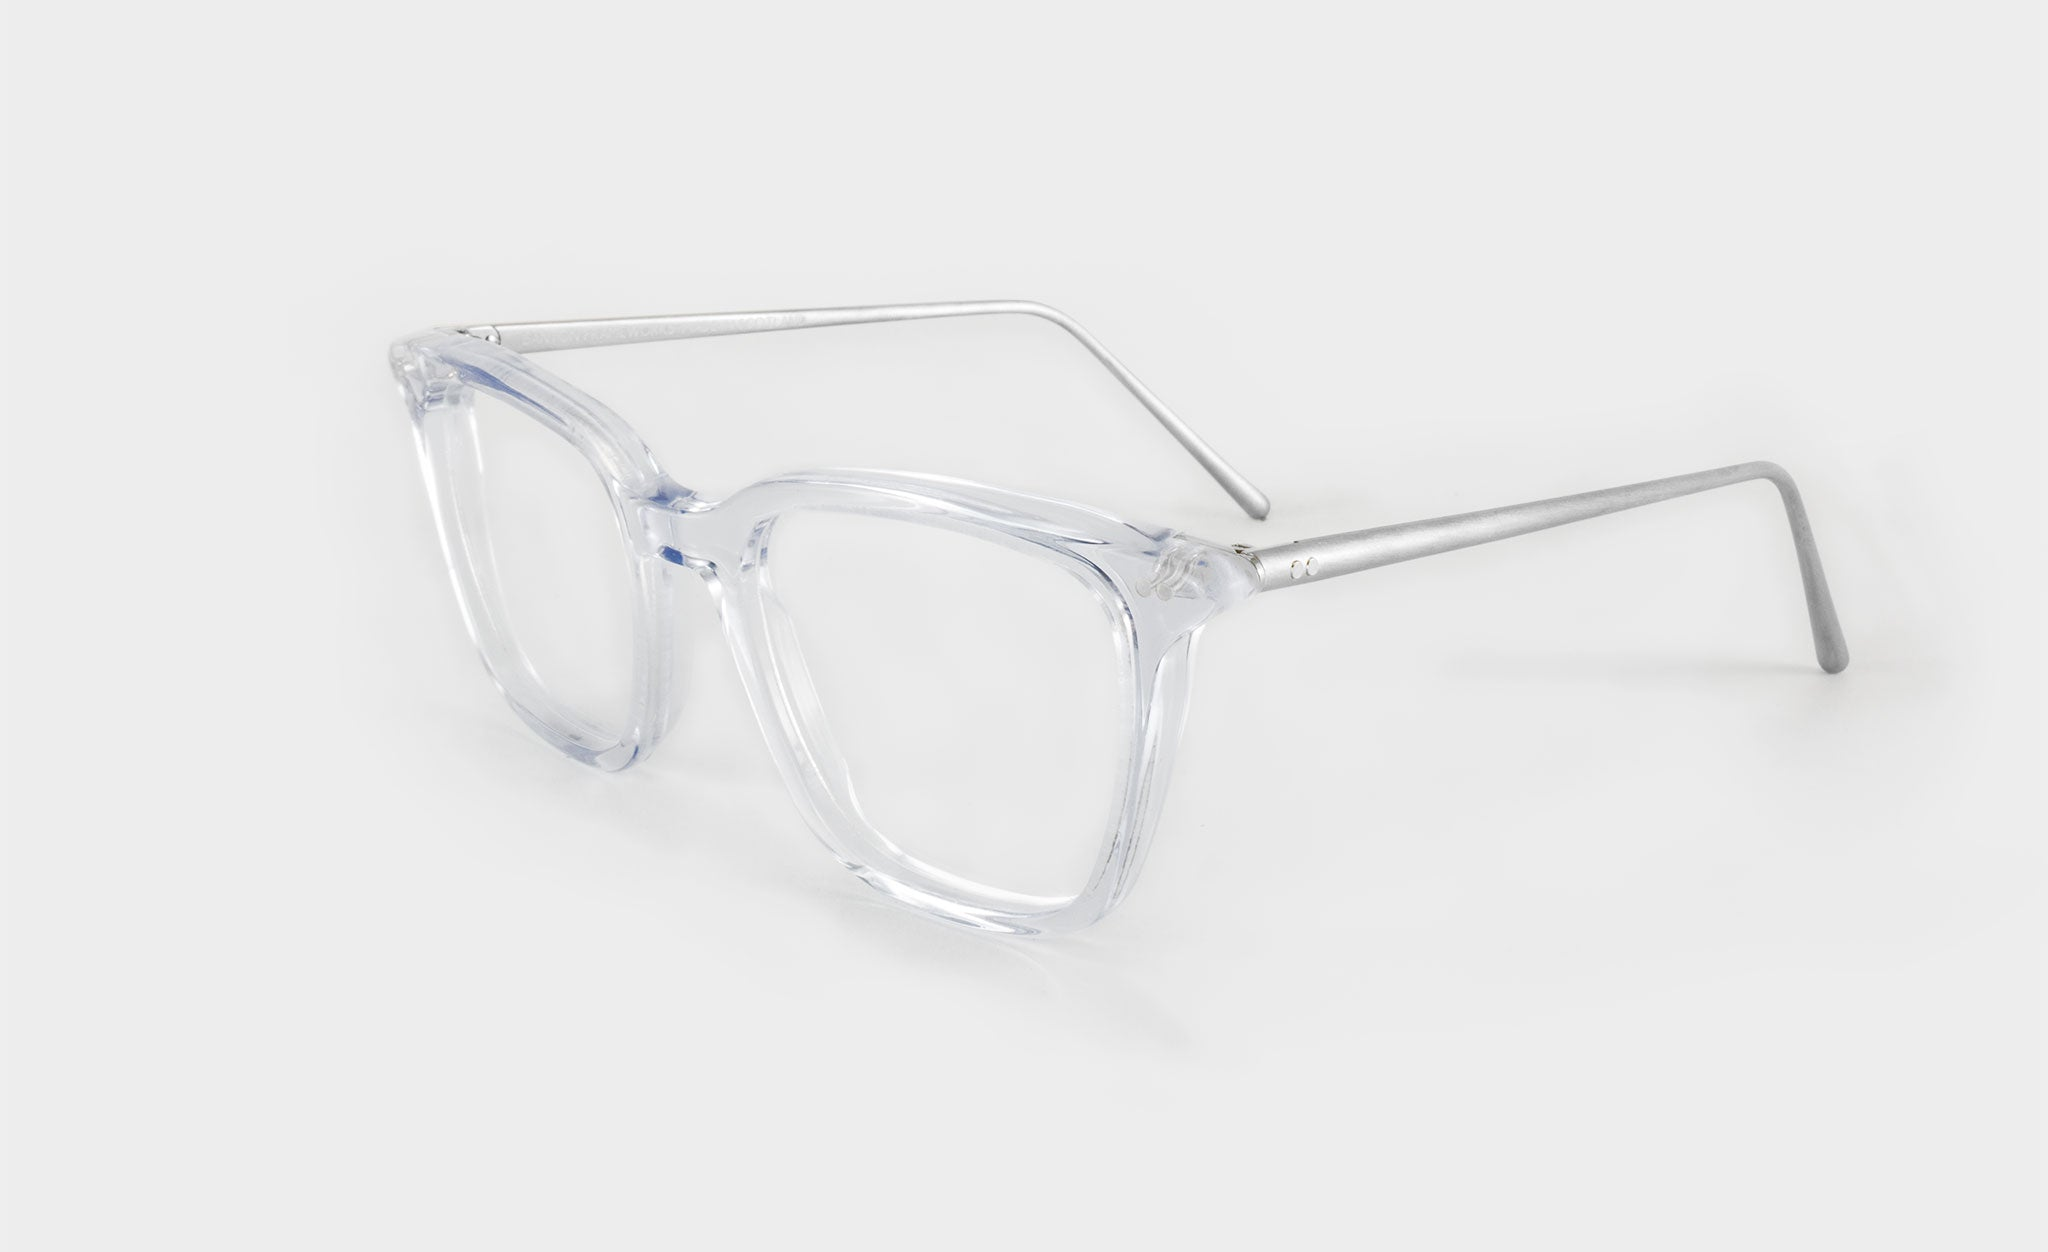 Womens glasses clear frame glasses side view